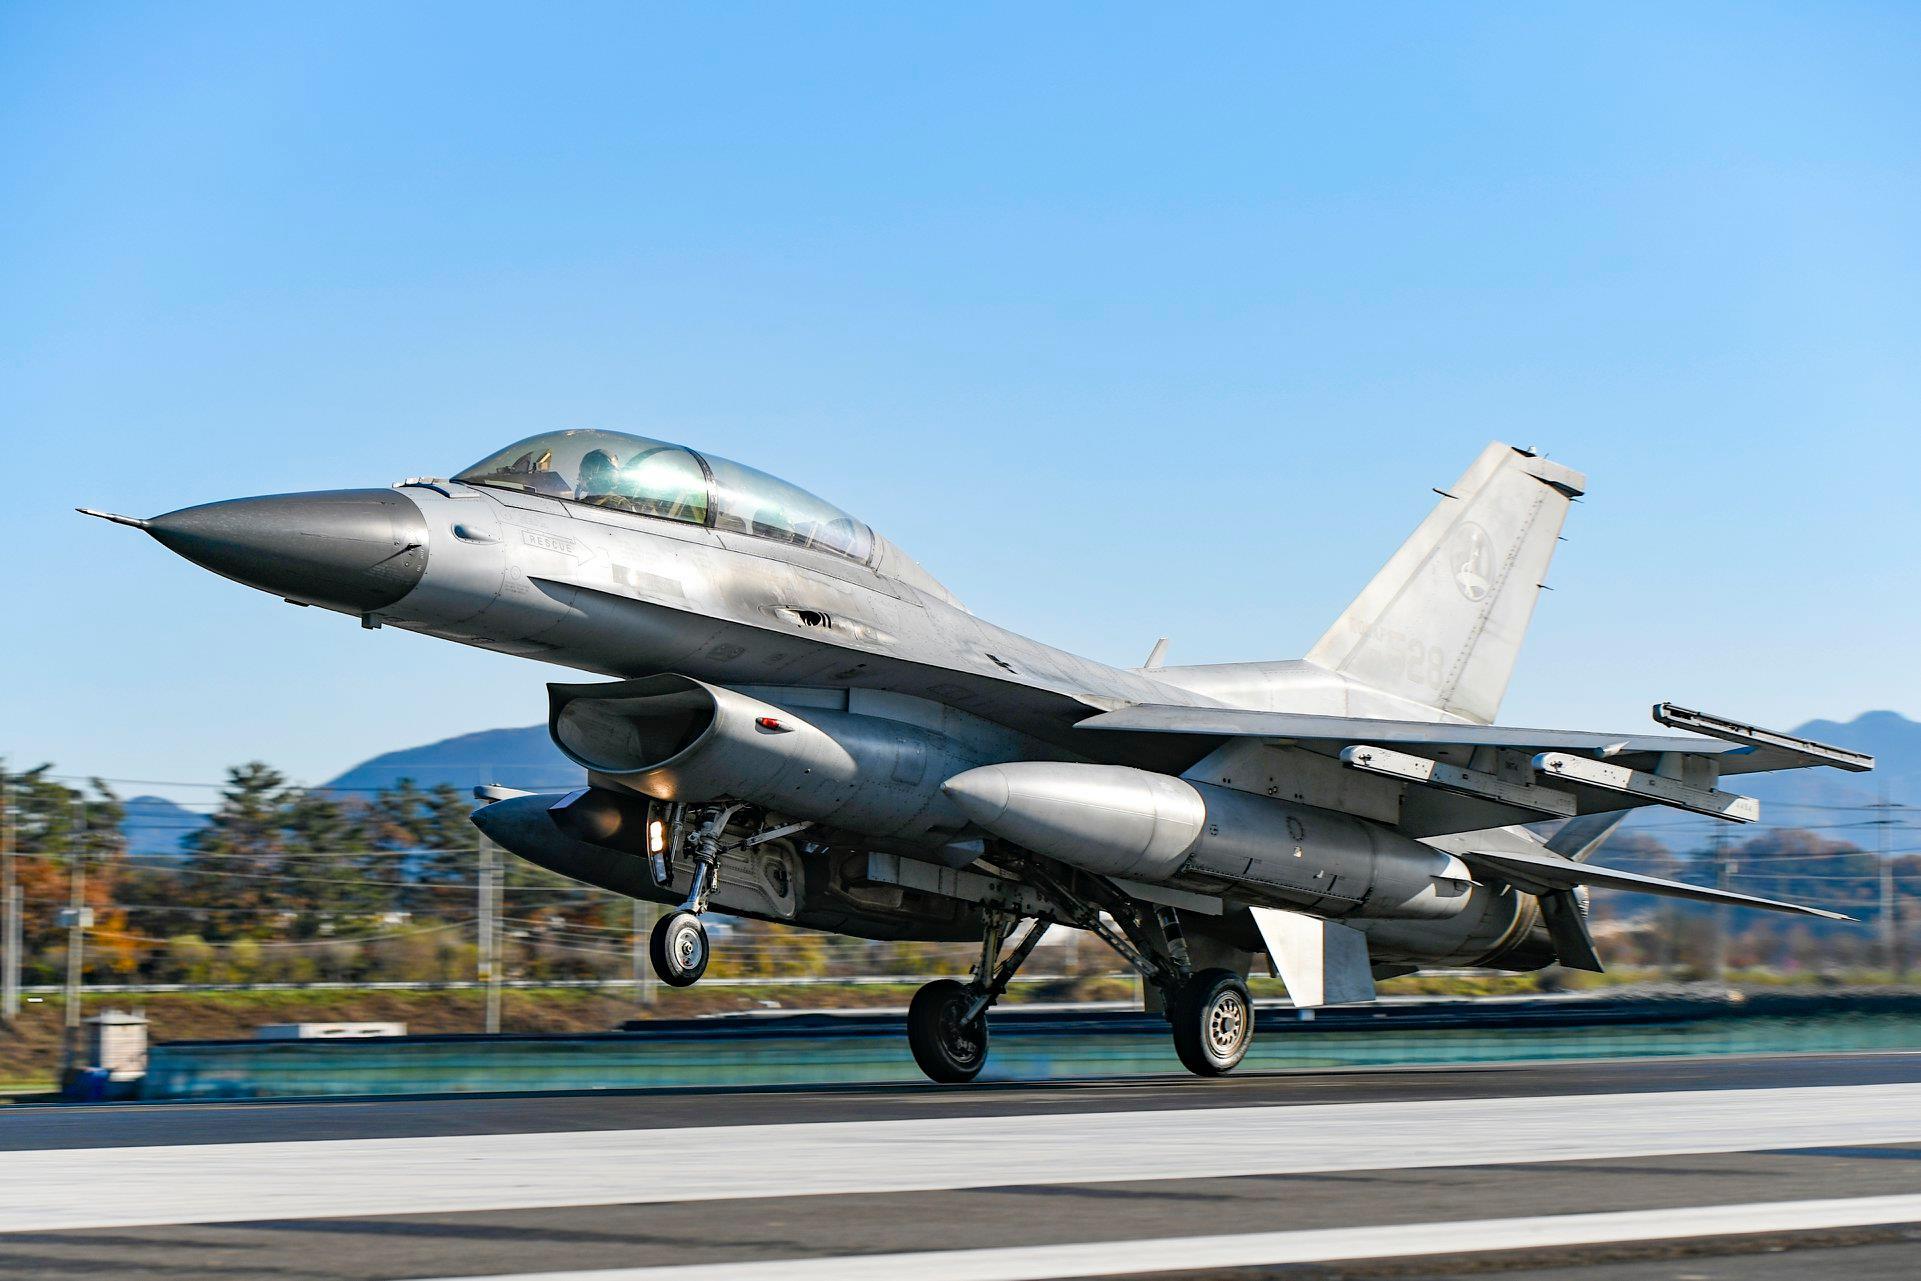 Lockheed Martin awarded $34M contract for Korea's F-16 life extension